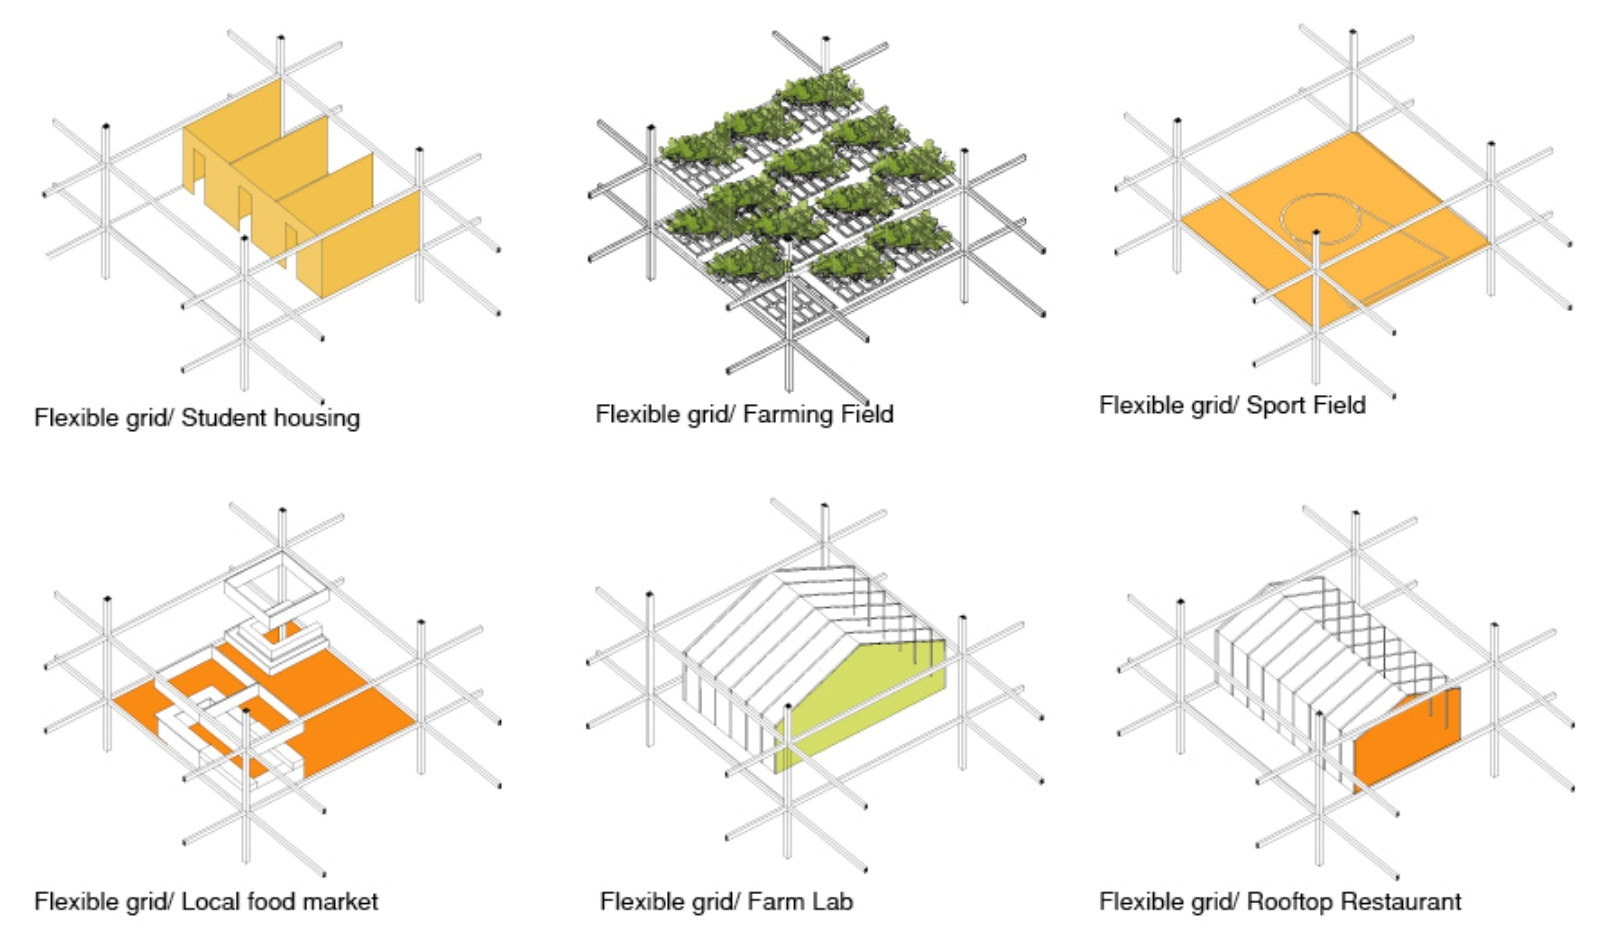 The Youth Village Farm Lab And Milan Expo Horizontal Farm